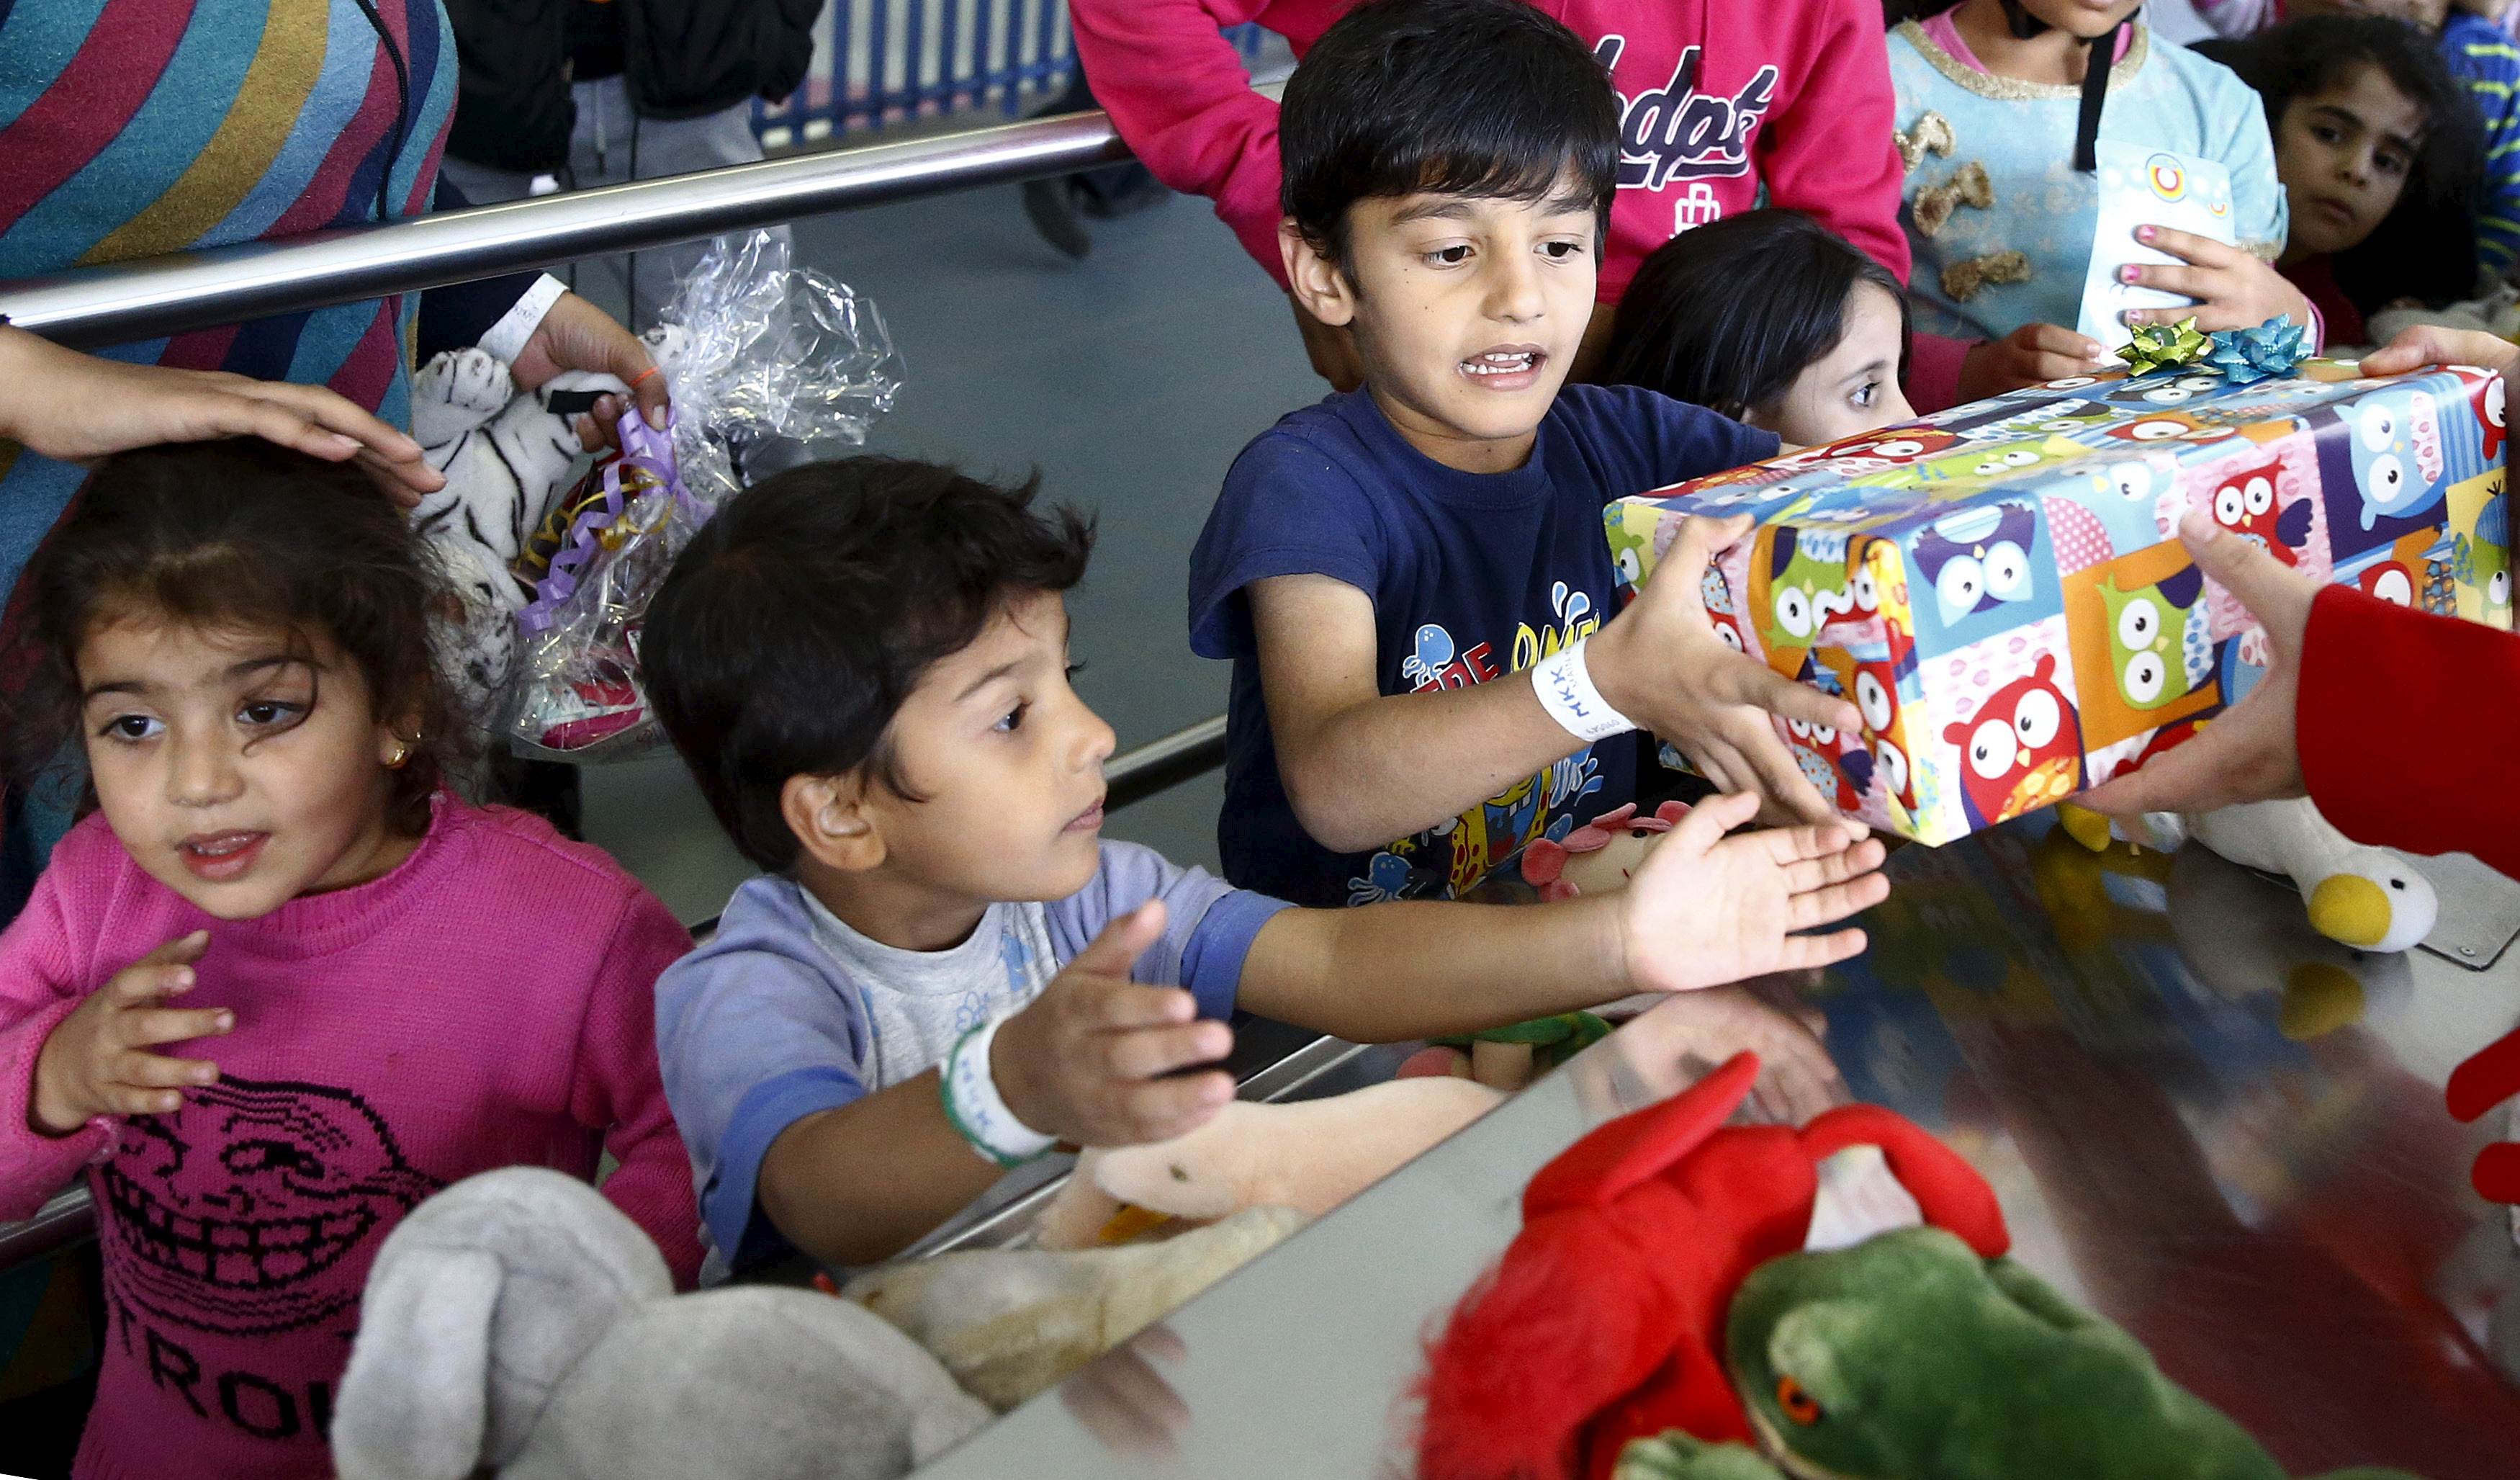 Migrant children reach out for gifts donated by the local community for the Bayram festivities at an improvised temporary shelter in a sports hall in Hanau, Germany, Sept. 24, 2015.